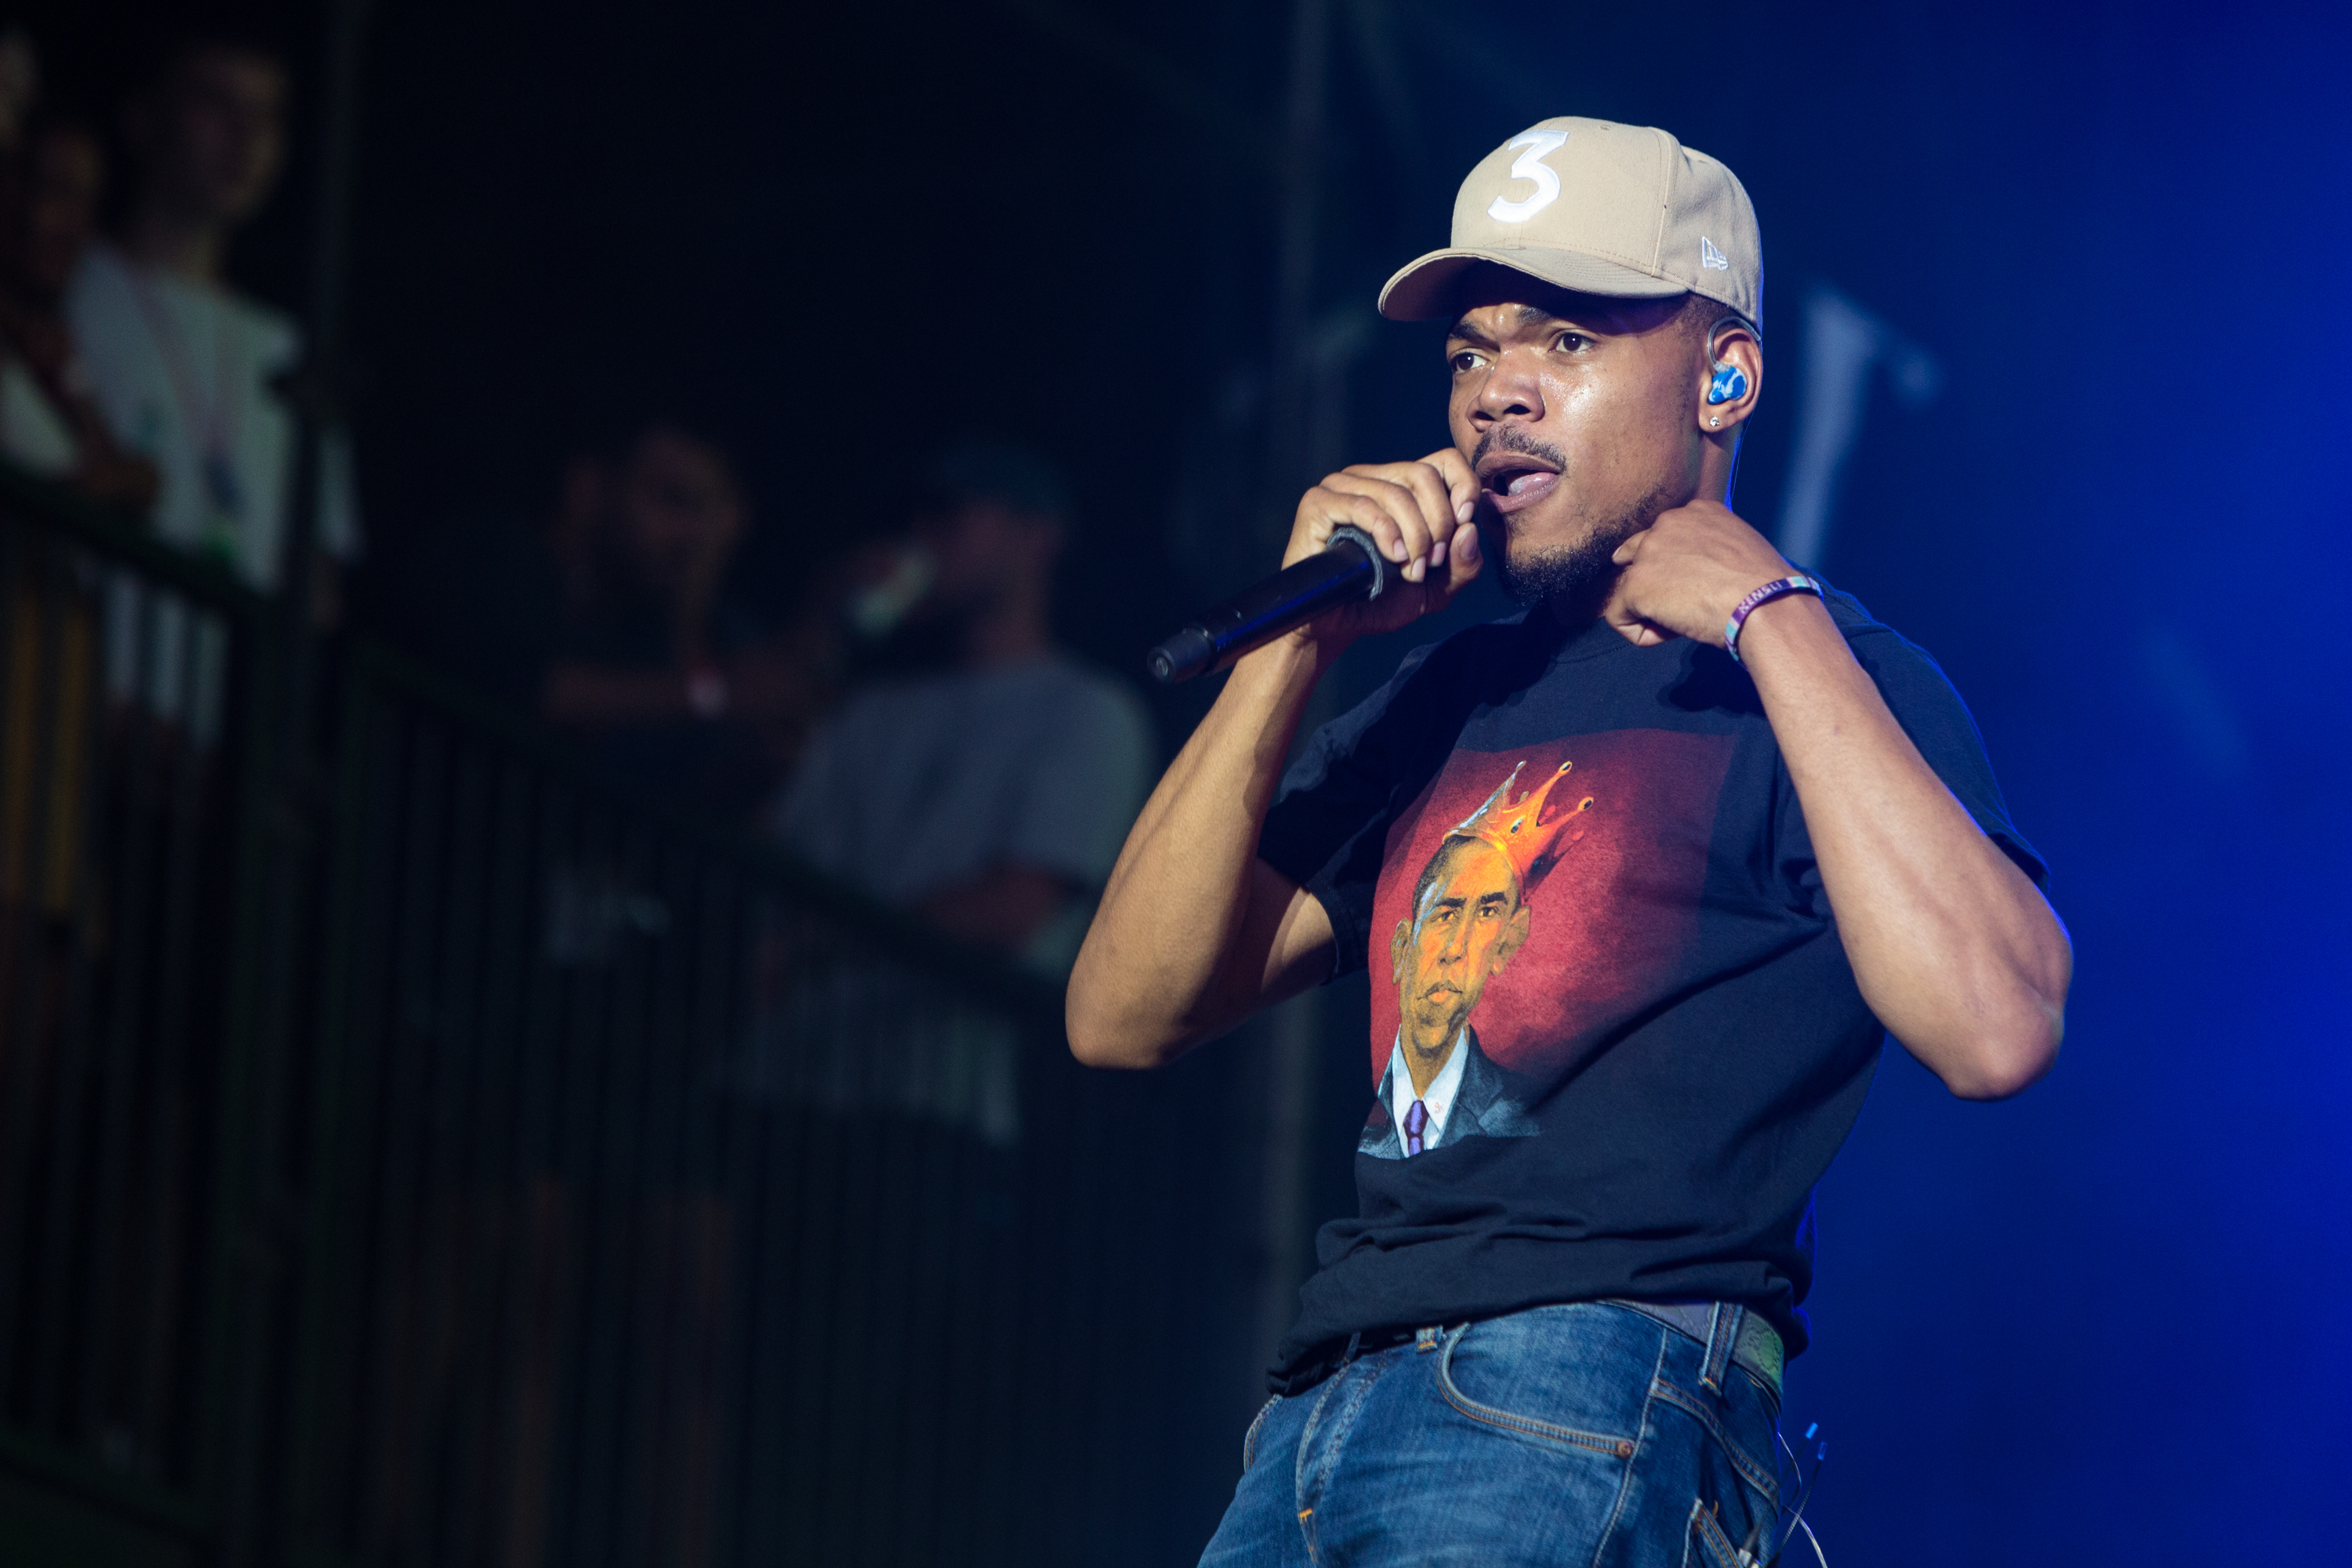 LONDON, ENGLAND - JULY 07:  Chance The Rapper performs at Wireless Festival Day 1 at Finsbury Park on July 7, 2017 in London, England.  (Photo by Lorne Thomson/Getty Images)